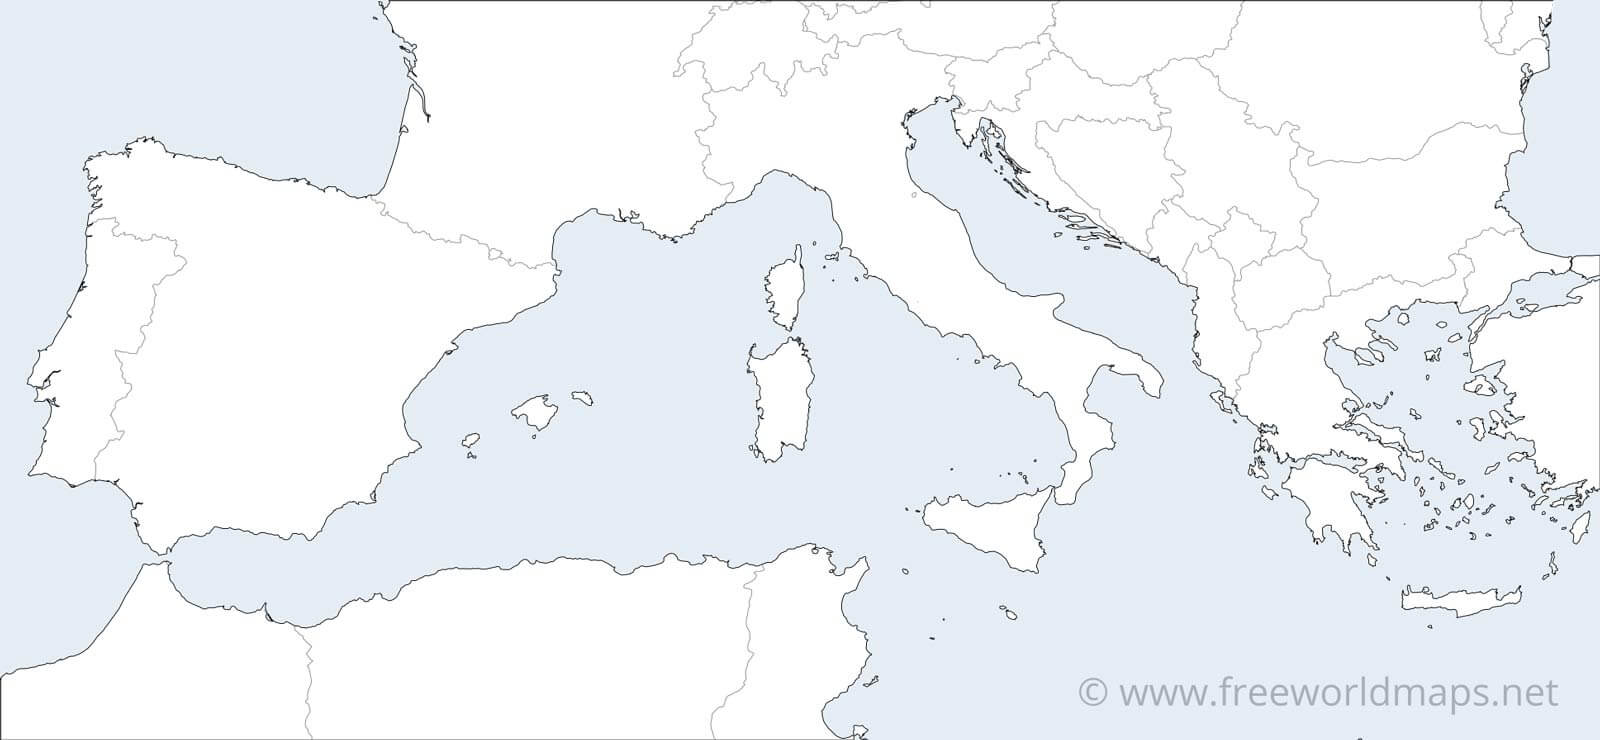 southern europe blank map Southern Europe Maps By Freeworldmaps Net southern europe blank map